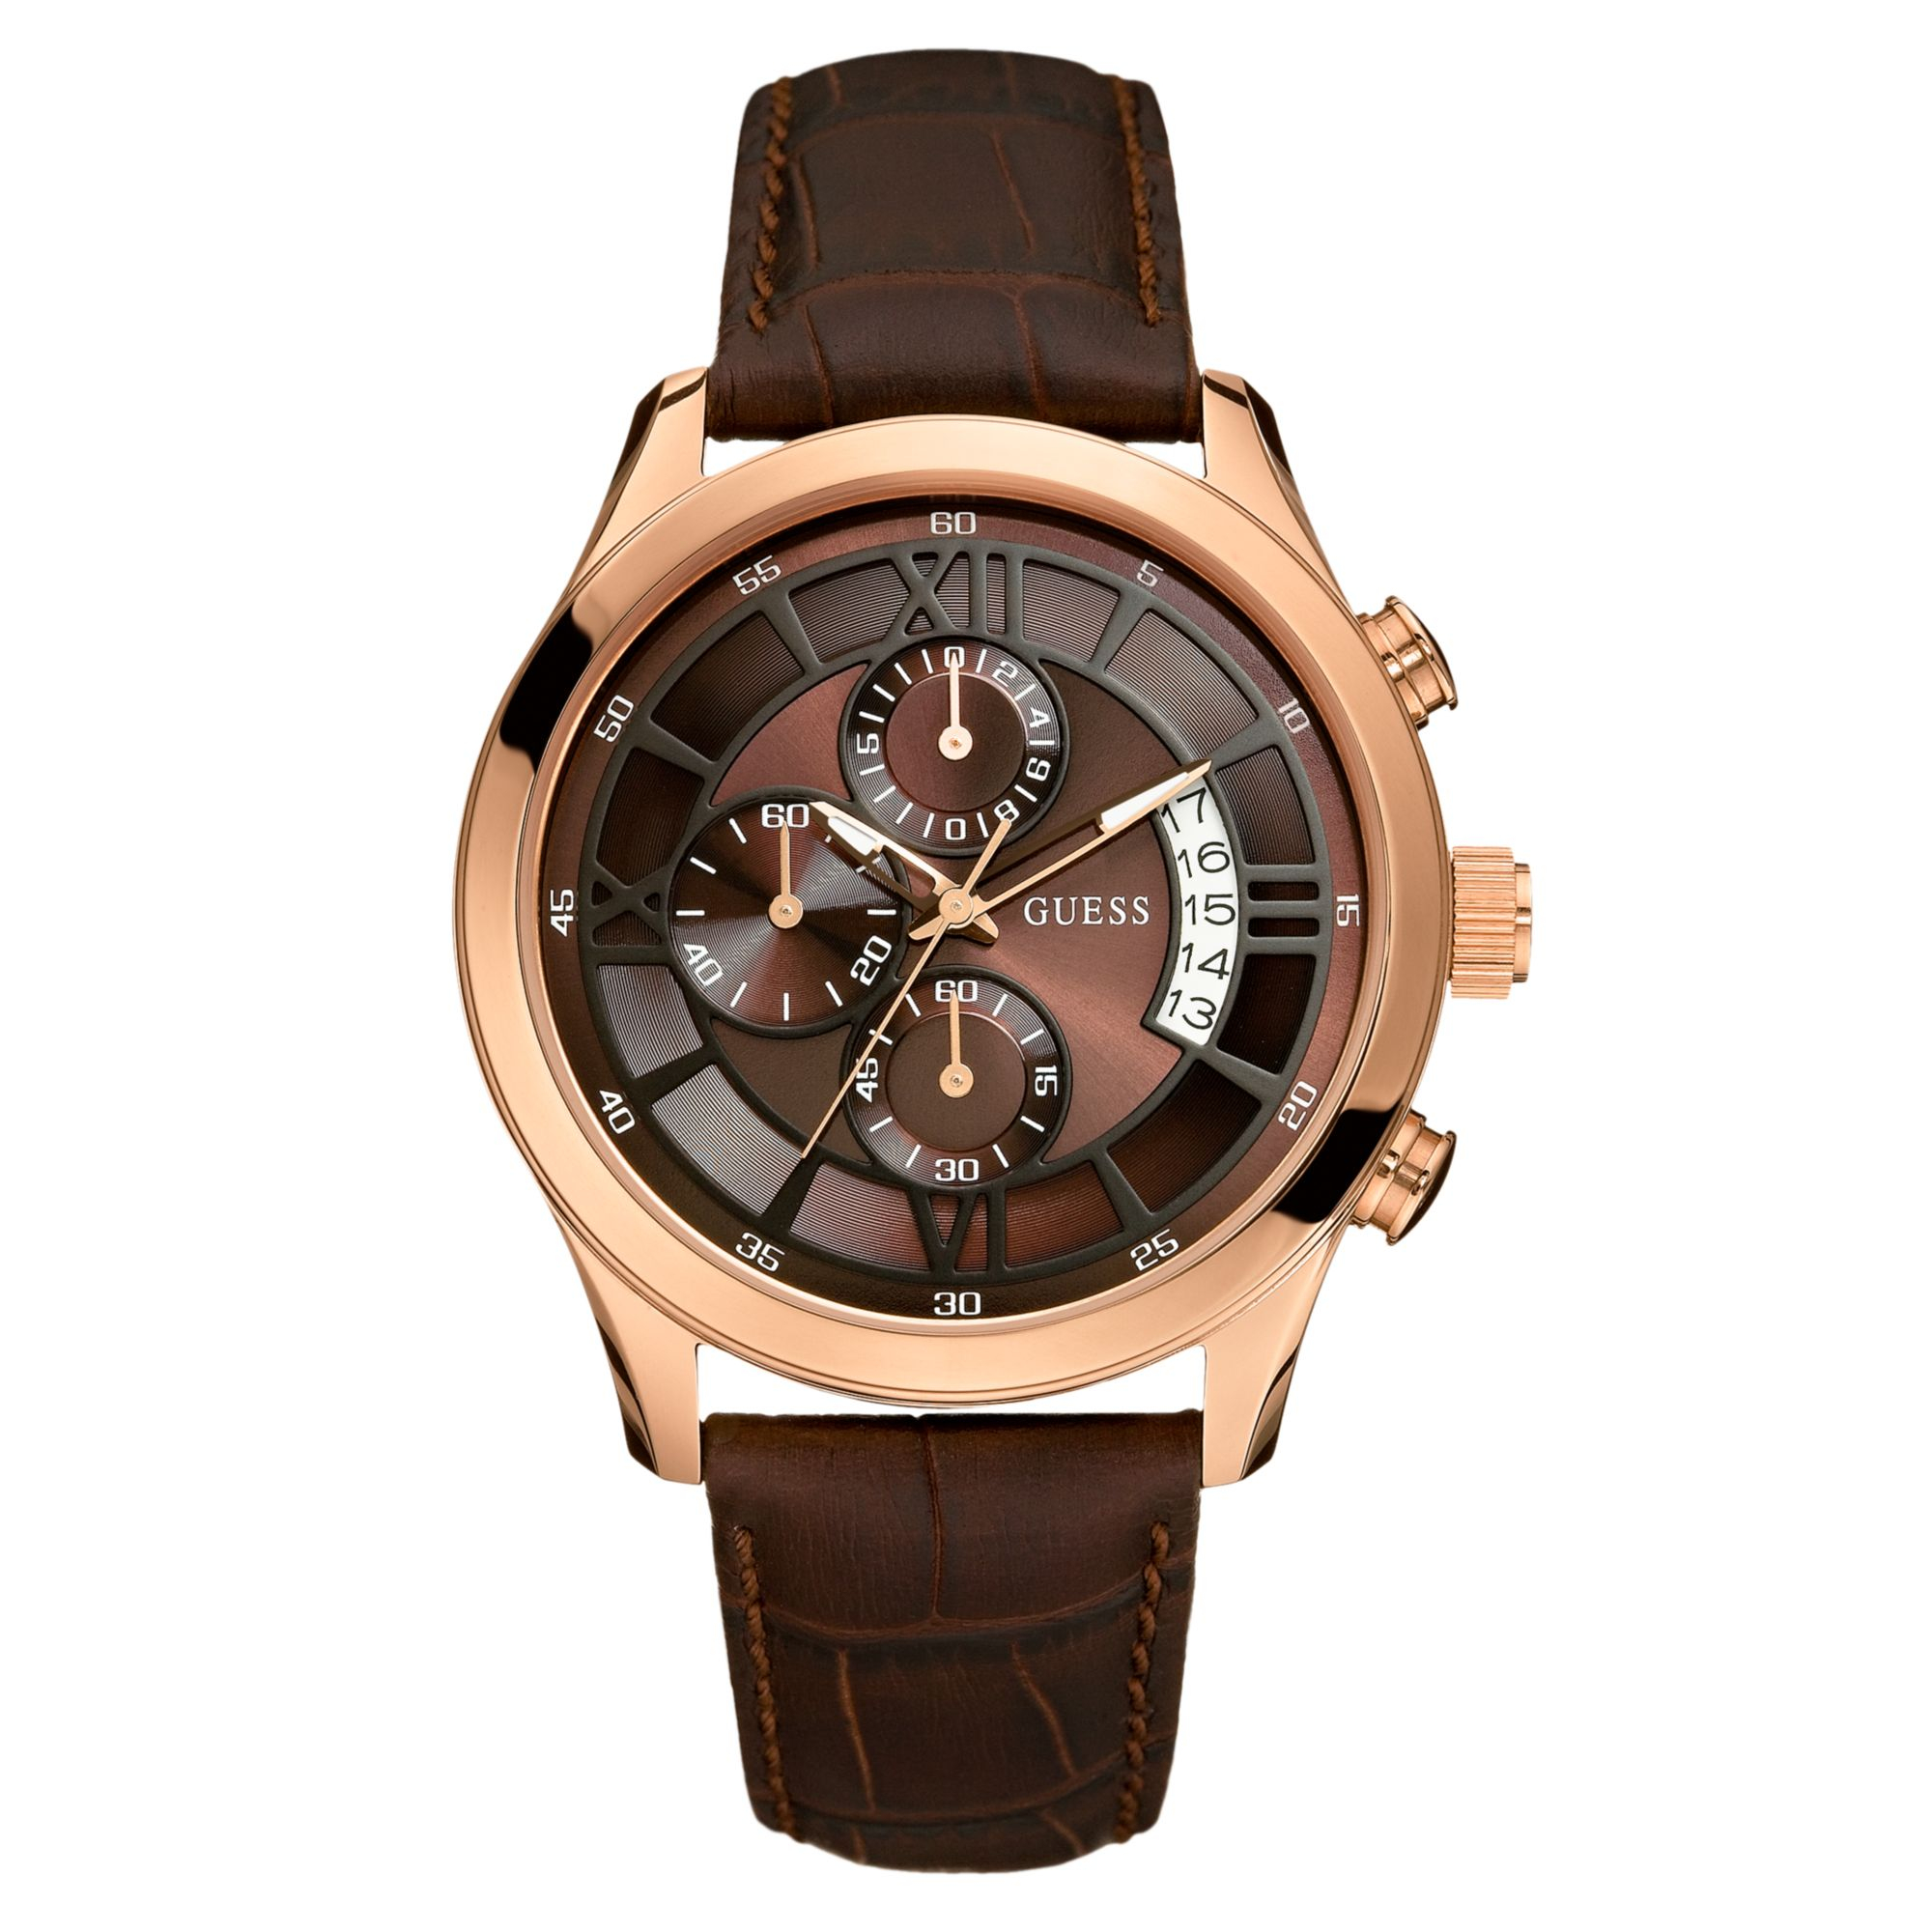 Guess Watch Mens Chronograph Brown Croc Embossed Leather ...